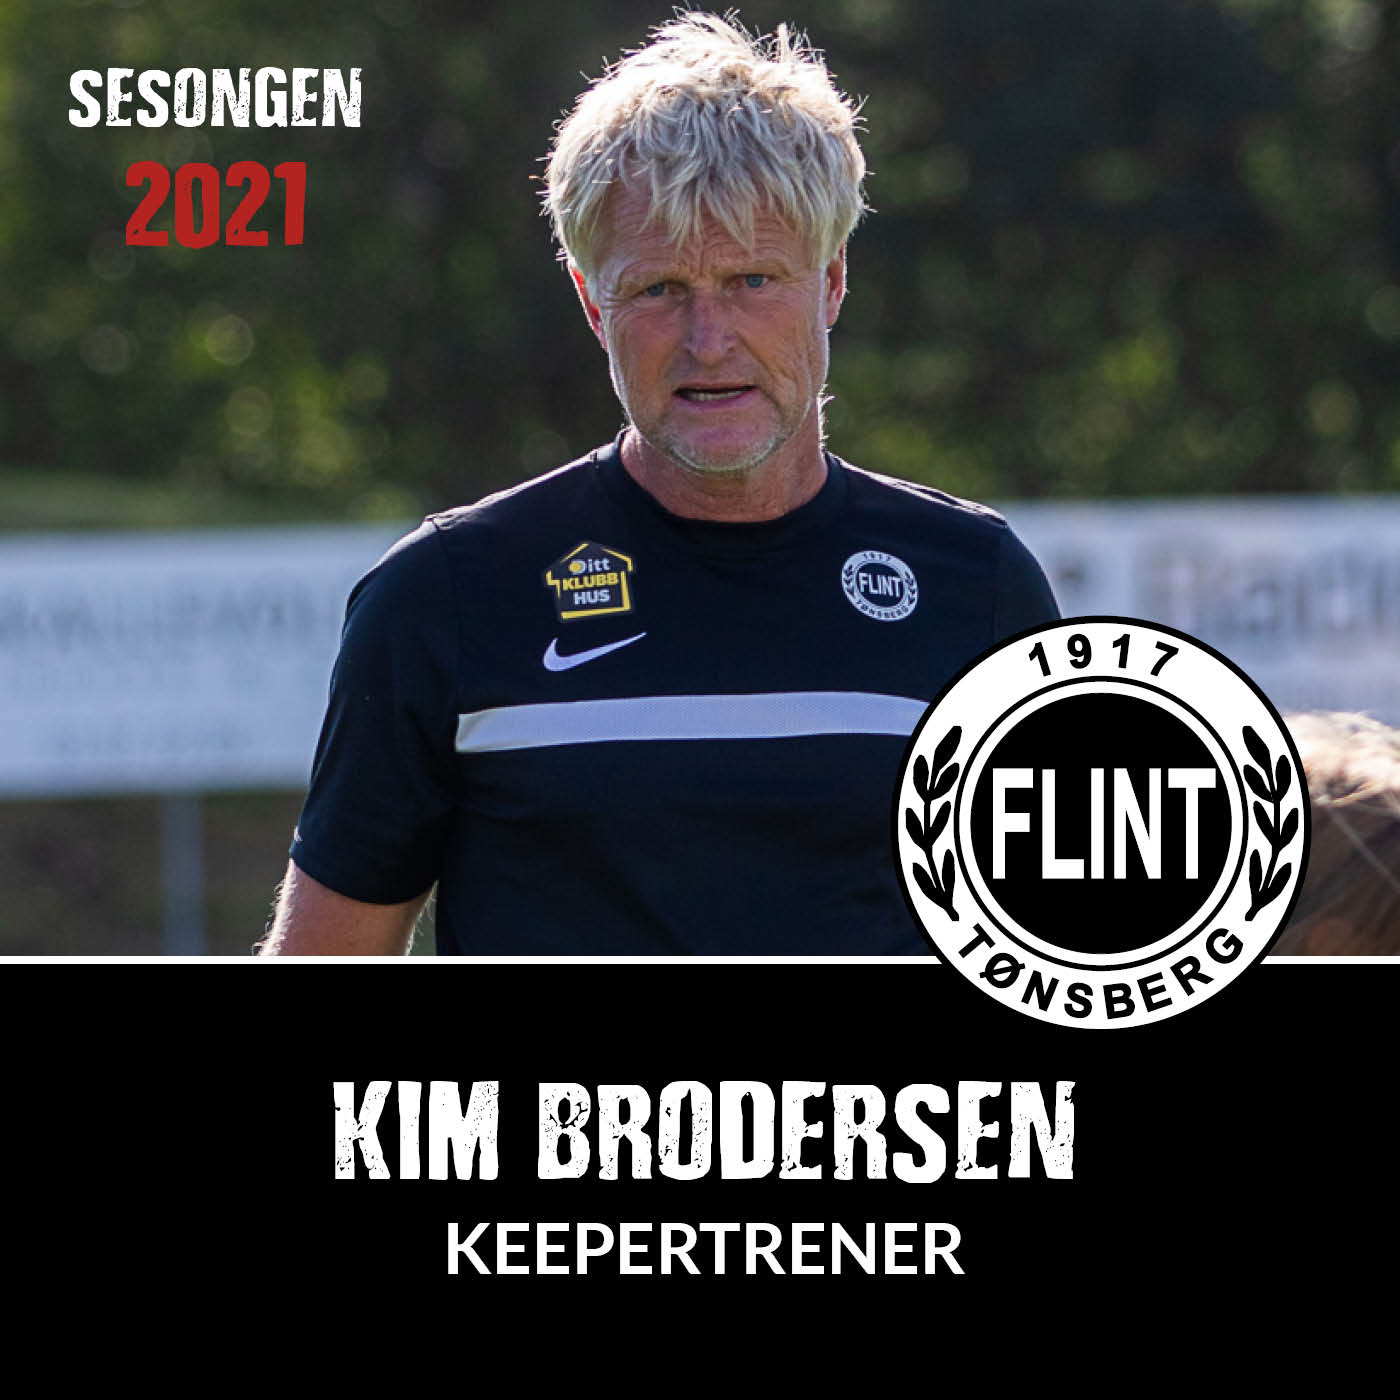 https://www.flintfotball.no/wp-content/uploads/2021/02/Trenere-Kim-Brodersen-keeper.jpg